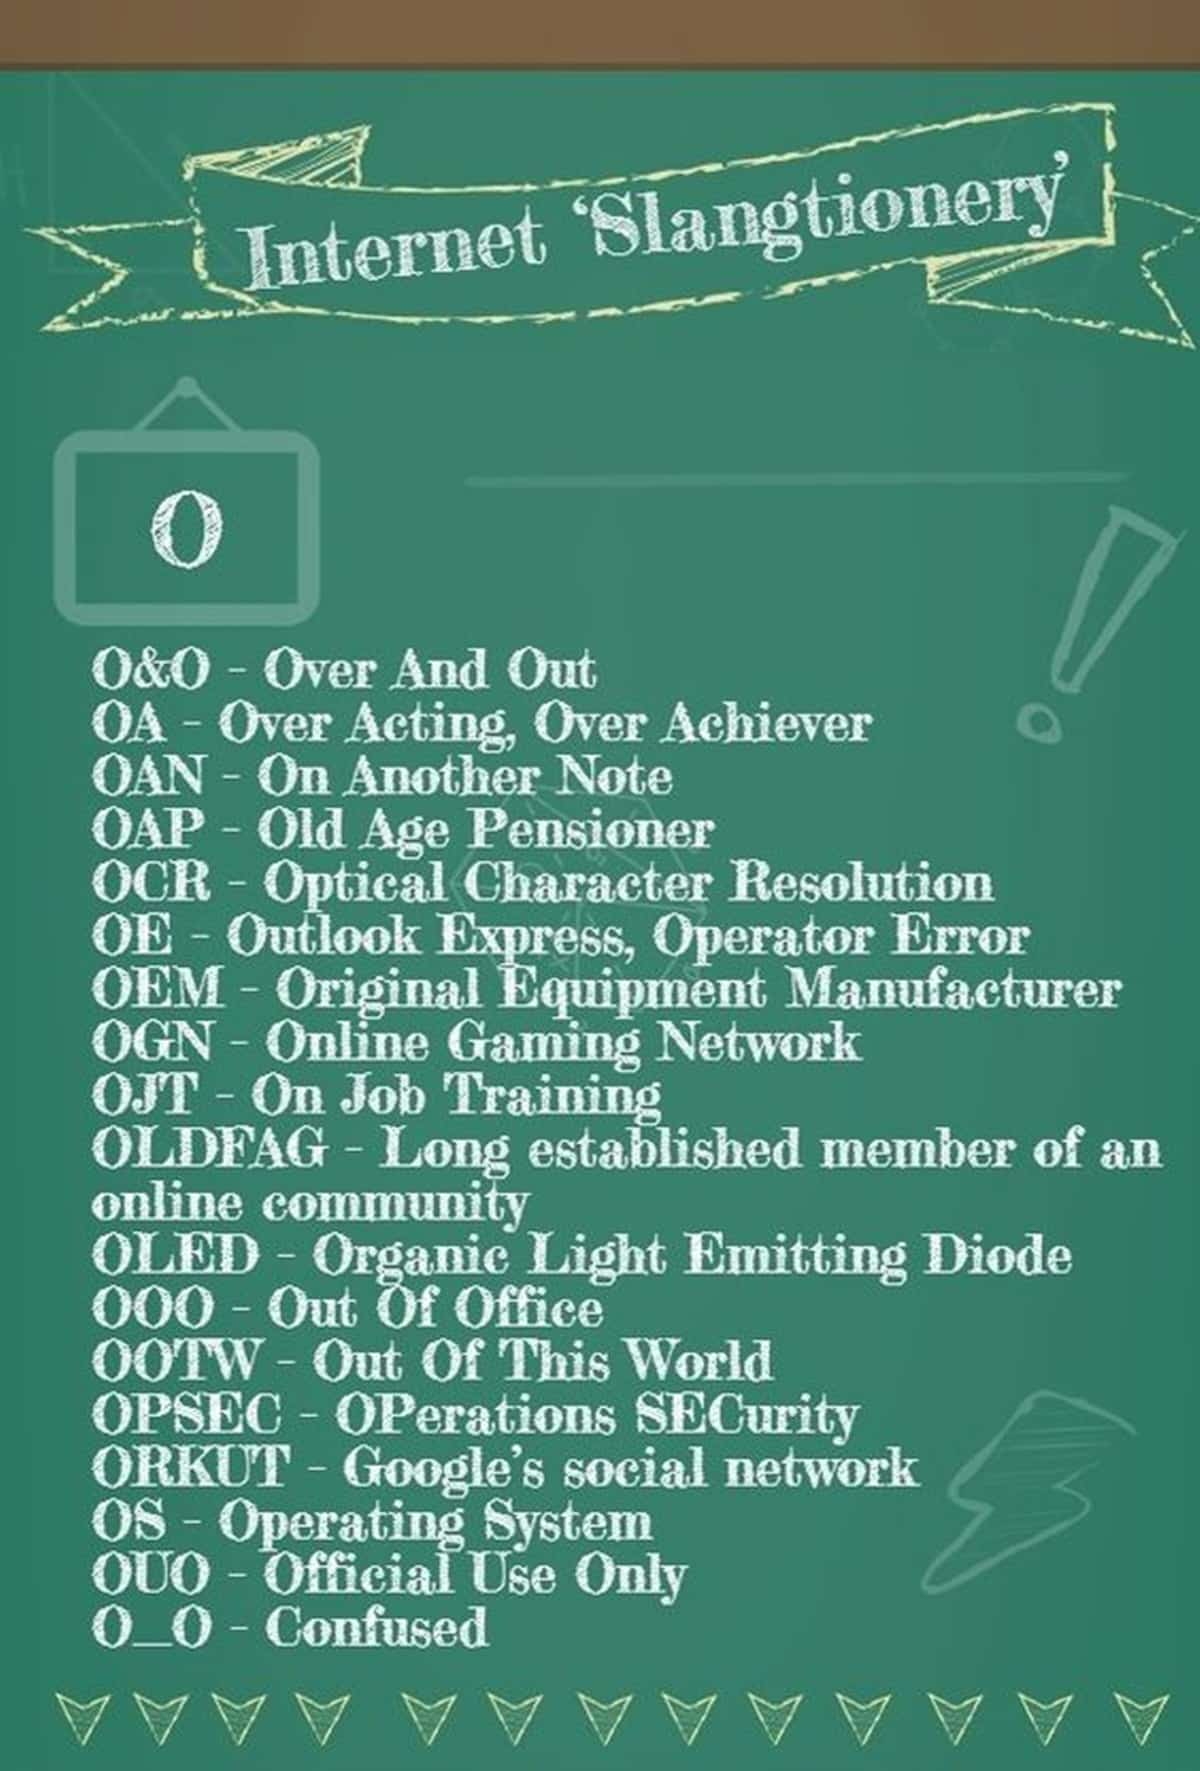 100+ Trendy Internet Slang Words and Acronyms You Need To ...